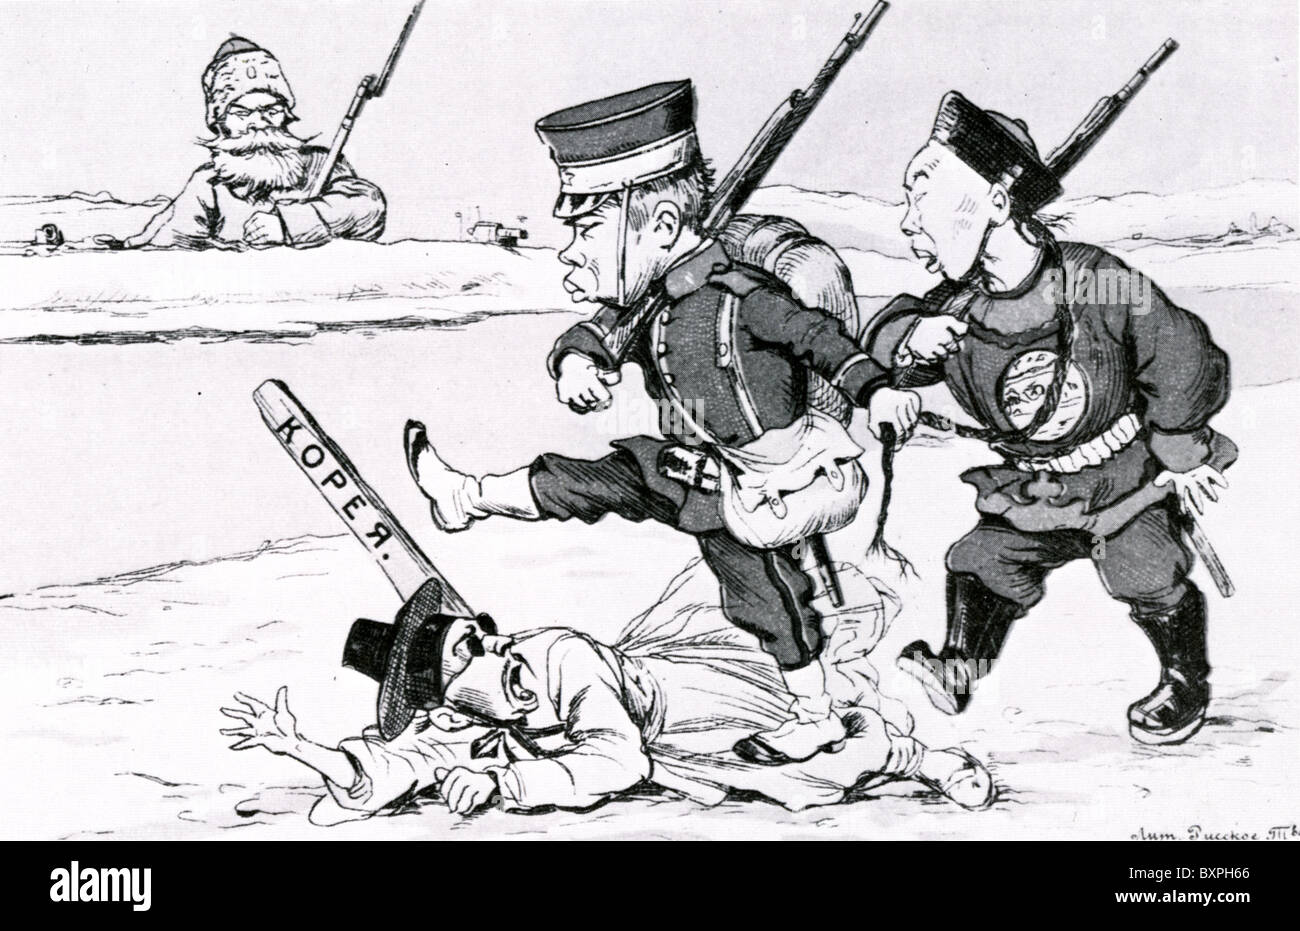 RUSSO-JAPANESE WAR (1904-5) Russian cartoon shows Japanese Army victimising Koreans while Russia remains indifferent - Stock Image